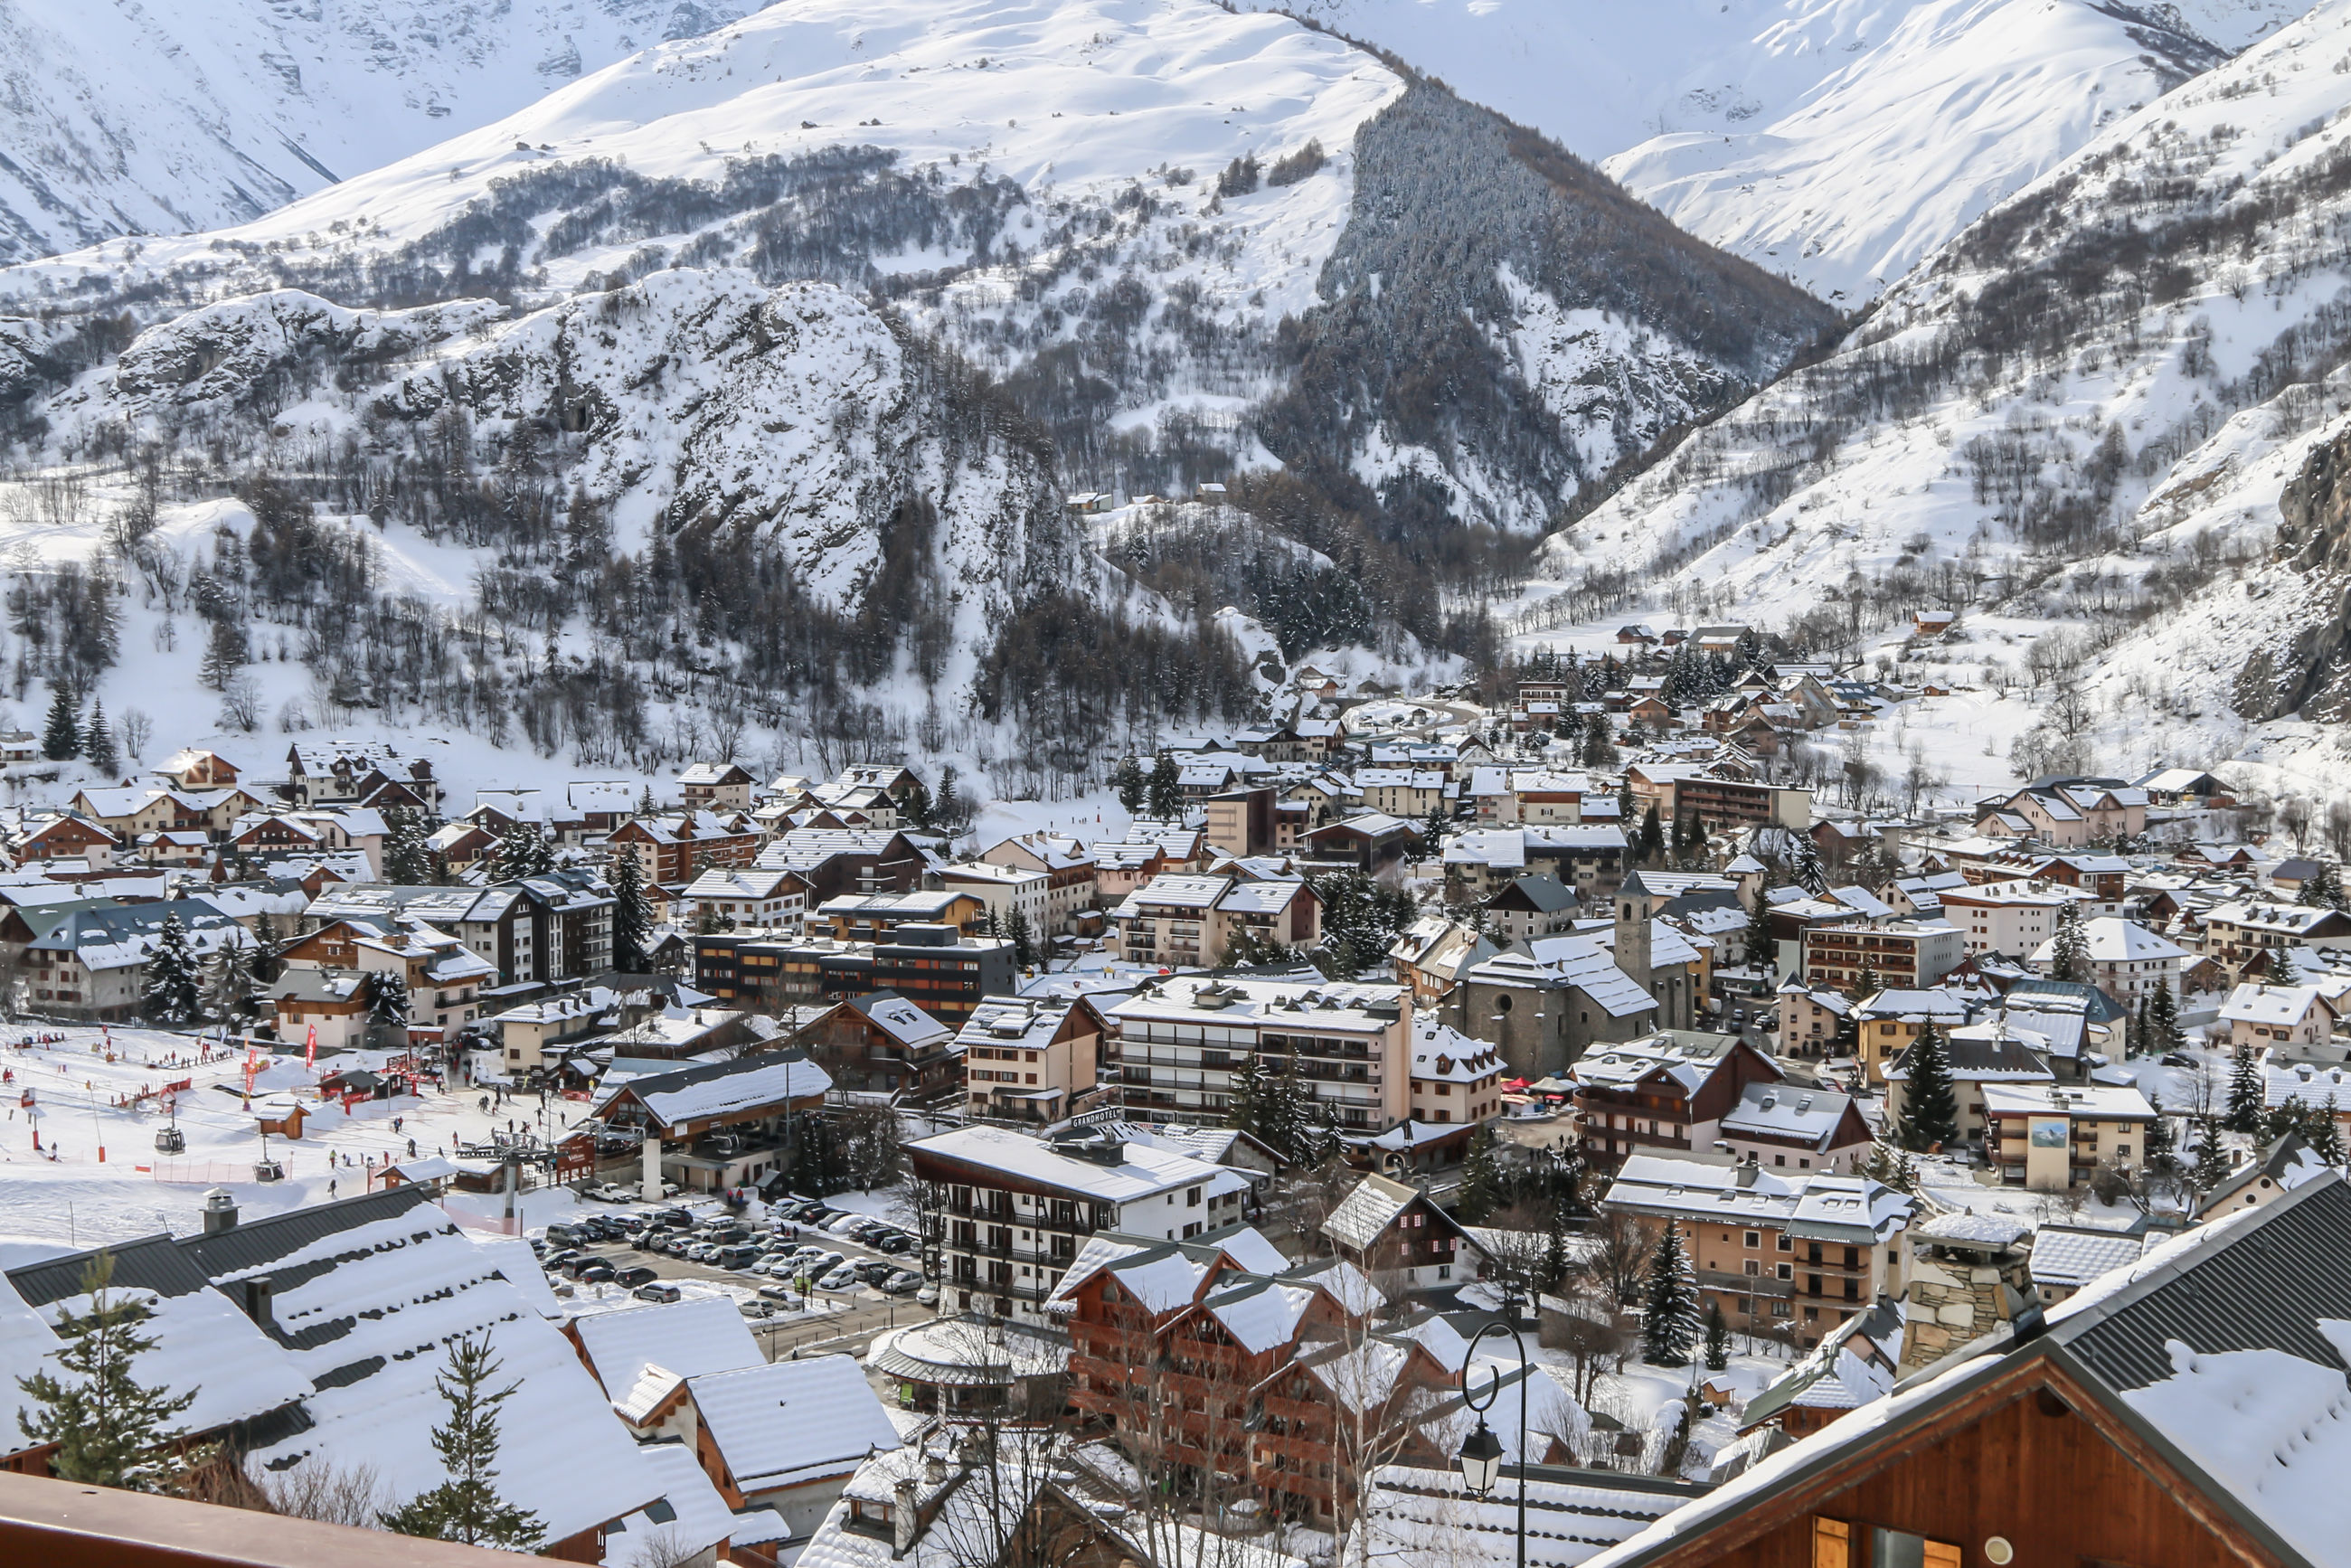 Aerial view of townscape and snowcapped mountains